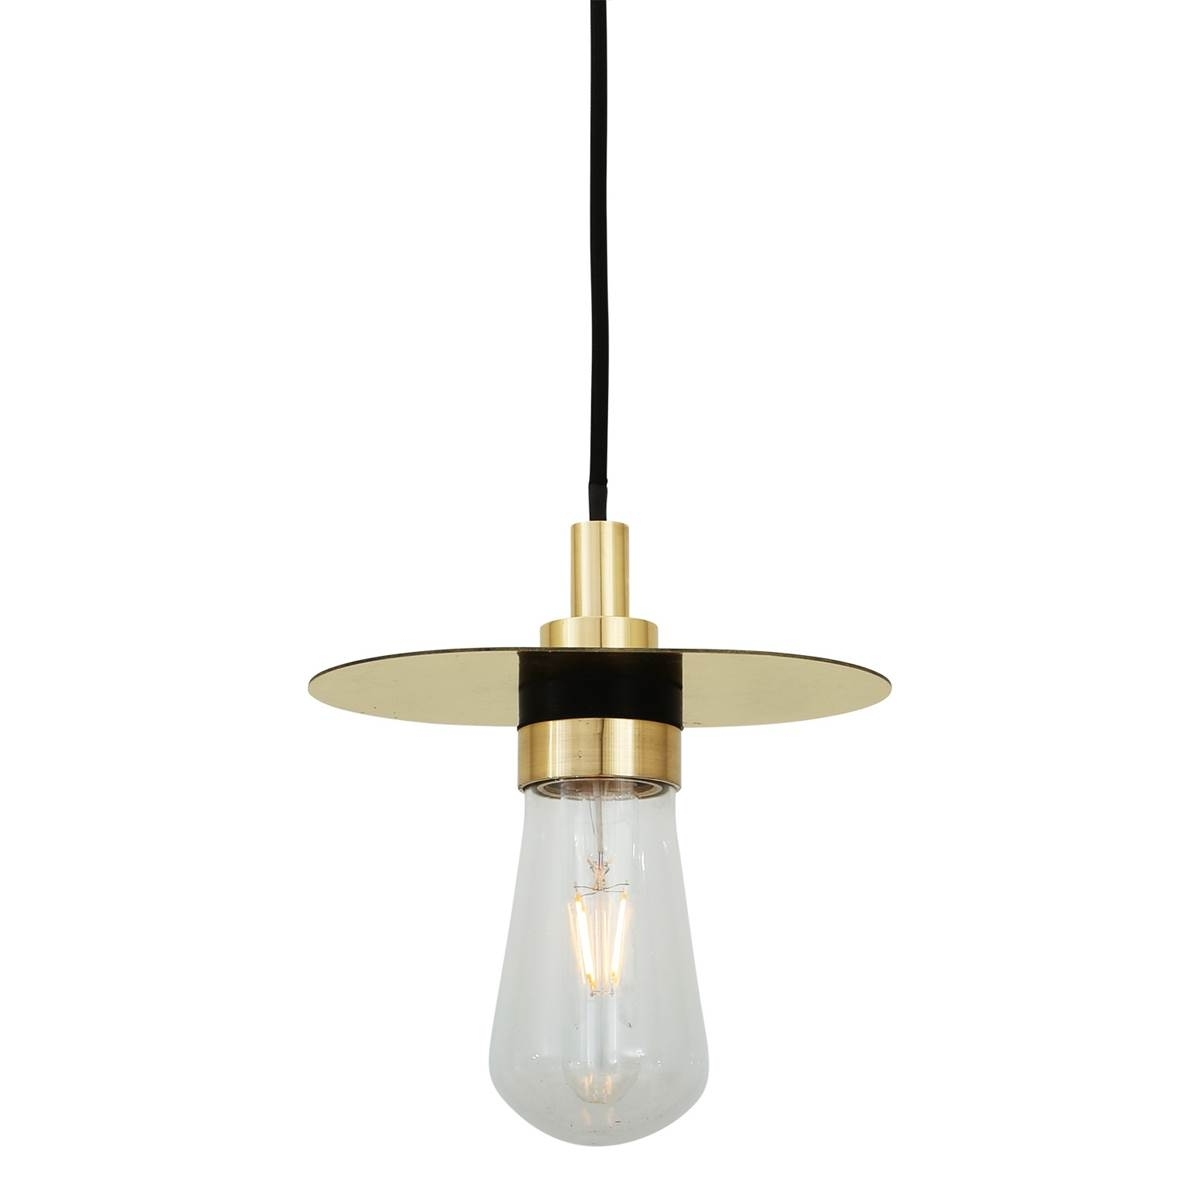 Well Liked Outdoor Pendant Light Crystal Pendant Light' Brushed Nickel Mini Regarding Outdoor Hanging Lights At Amazon (View 18 of 20)